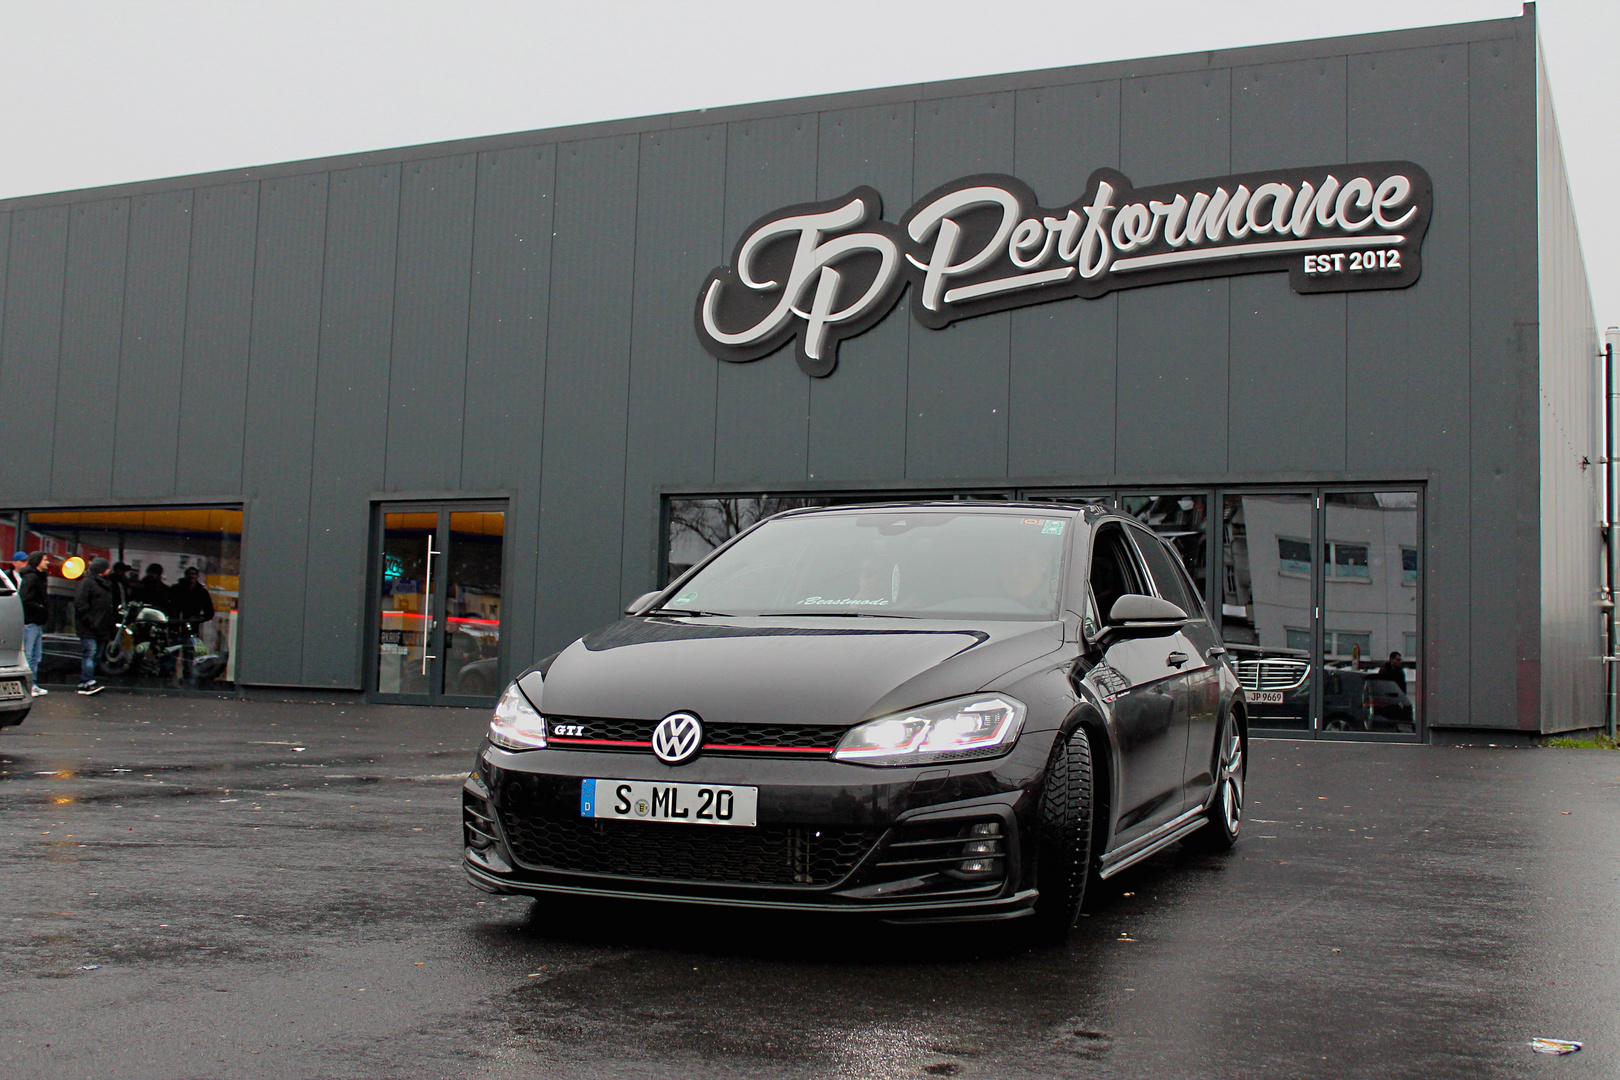 vw golf 7 facelift gti performance foto bild autos. Black Bedroom Furniture Sets. Home Design Ideas